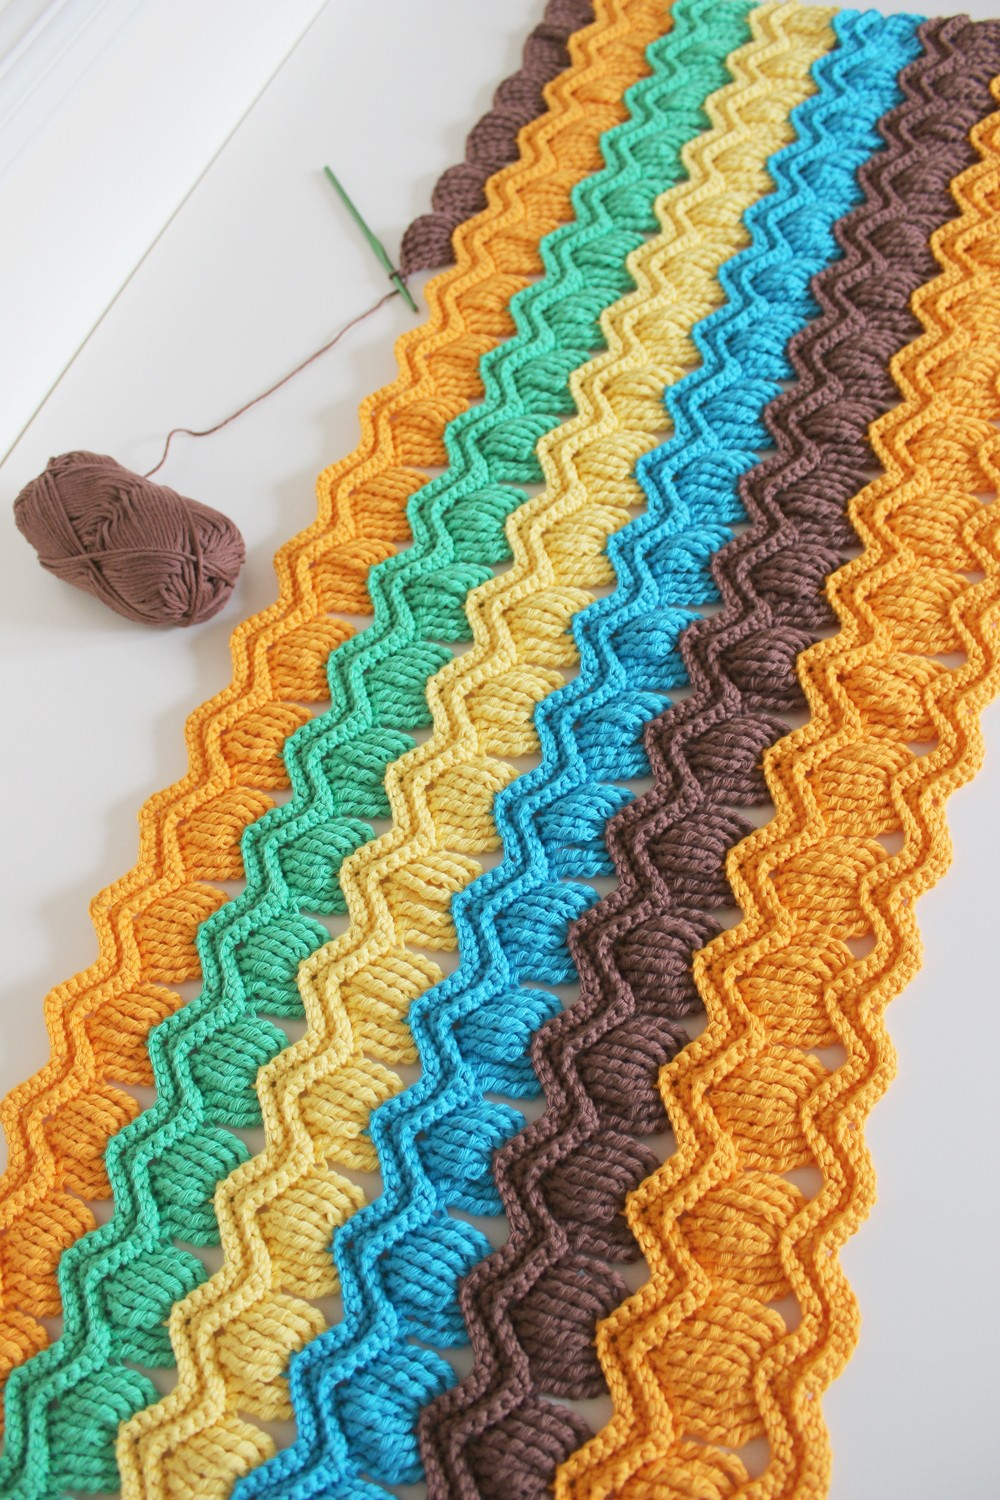 Ripple Crochet Pattern Related Keywords & Suggestions - Ripple Crochet ...